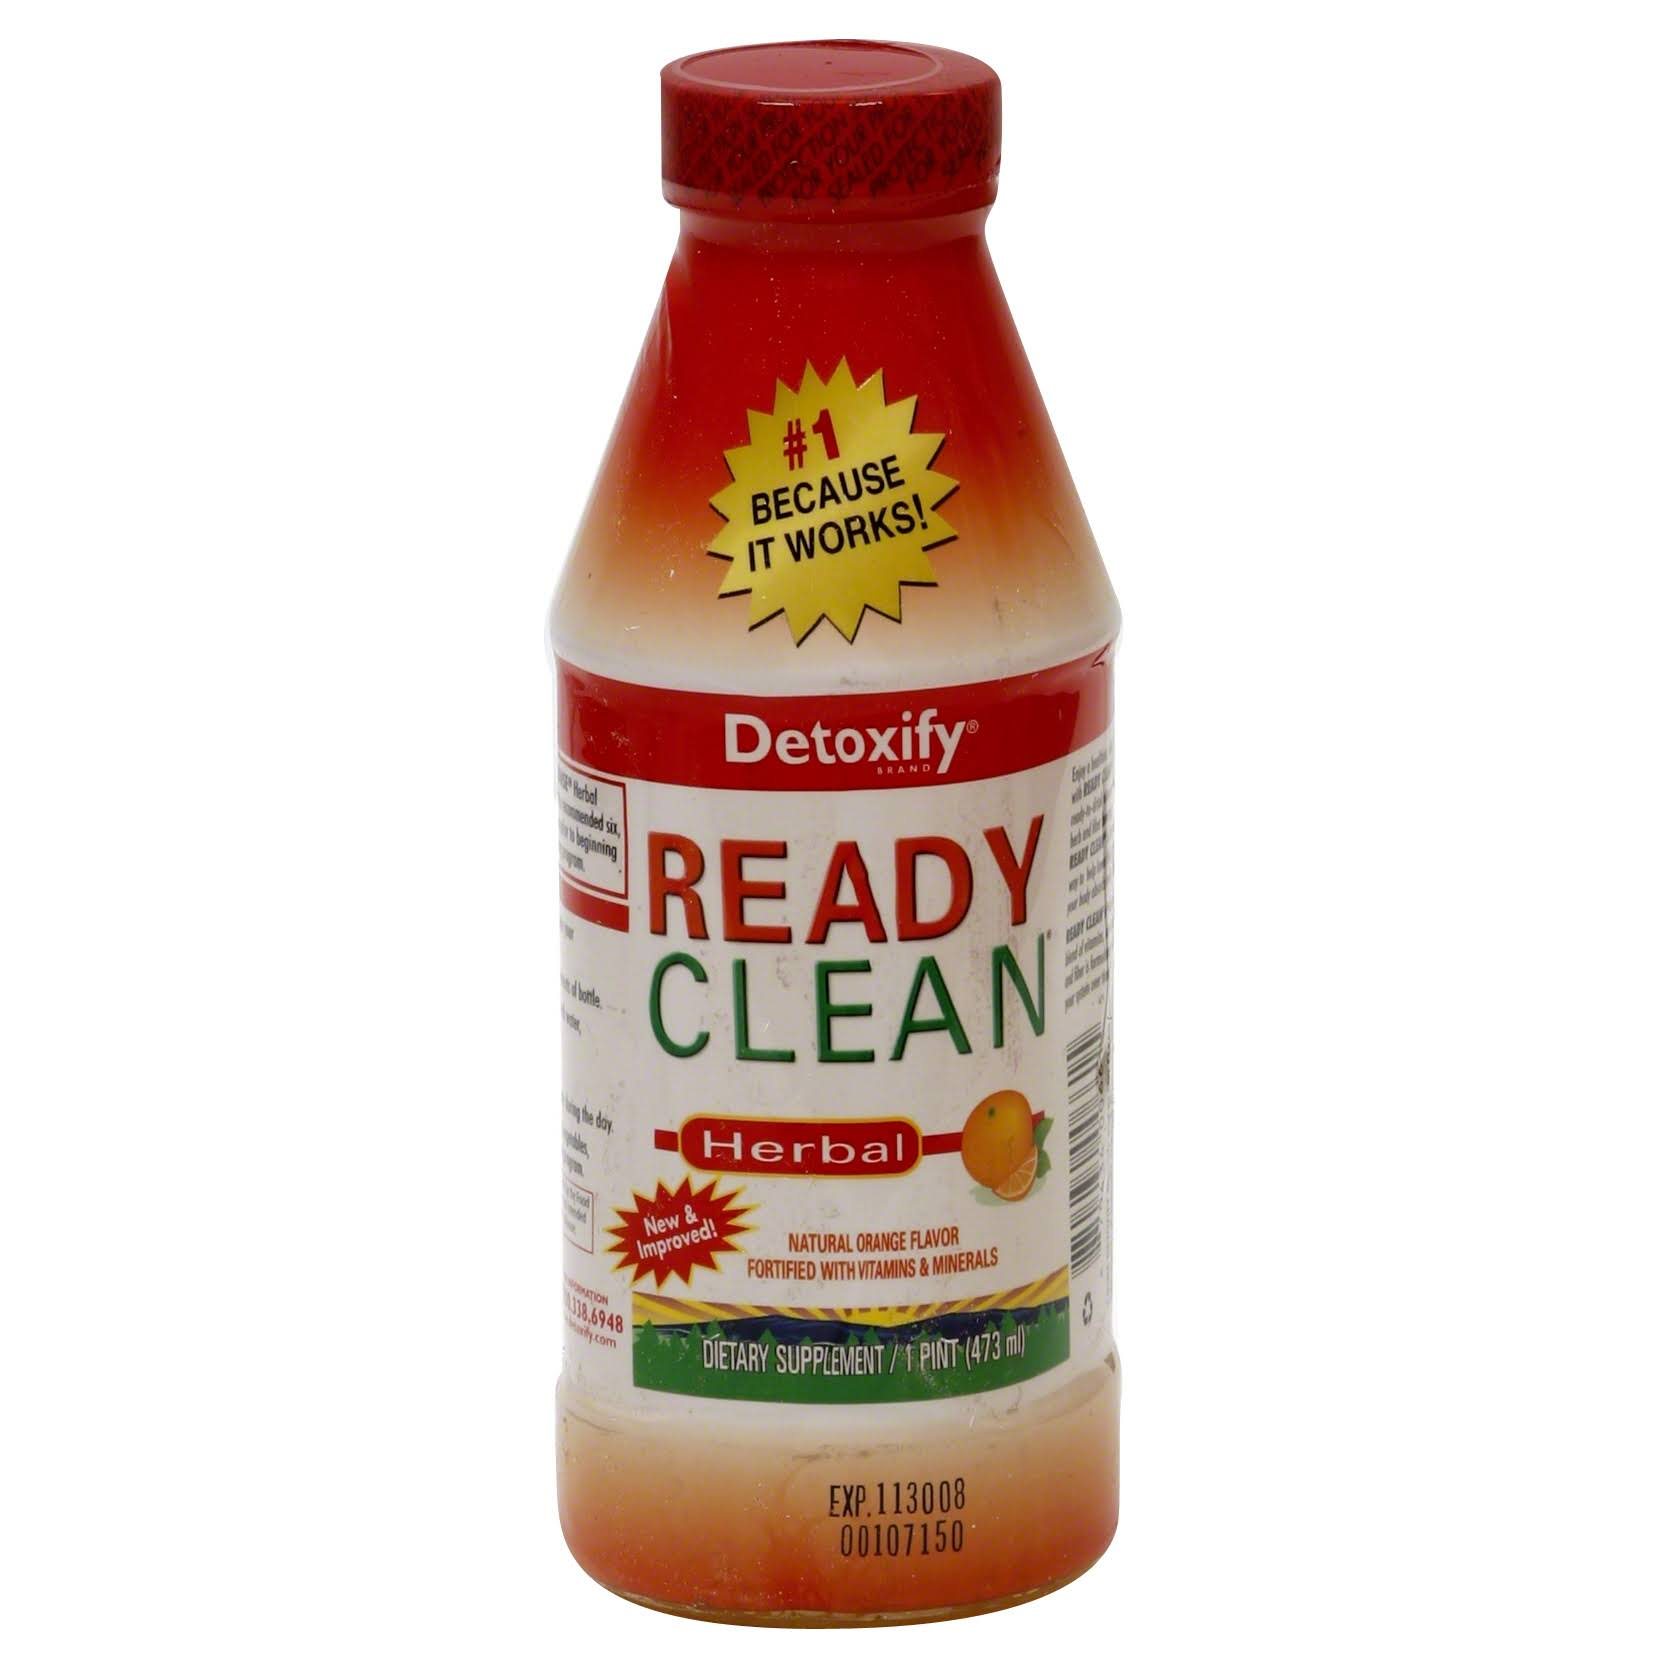 Detoxify One Source Brand Ready Clean Herbal Cleanse - Orange, 16oz